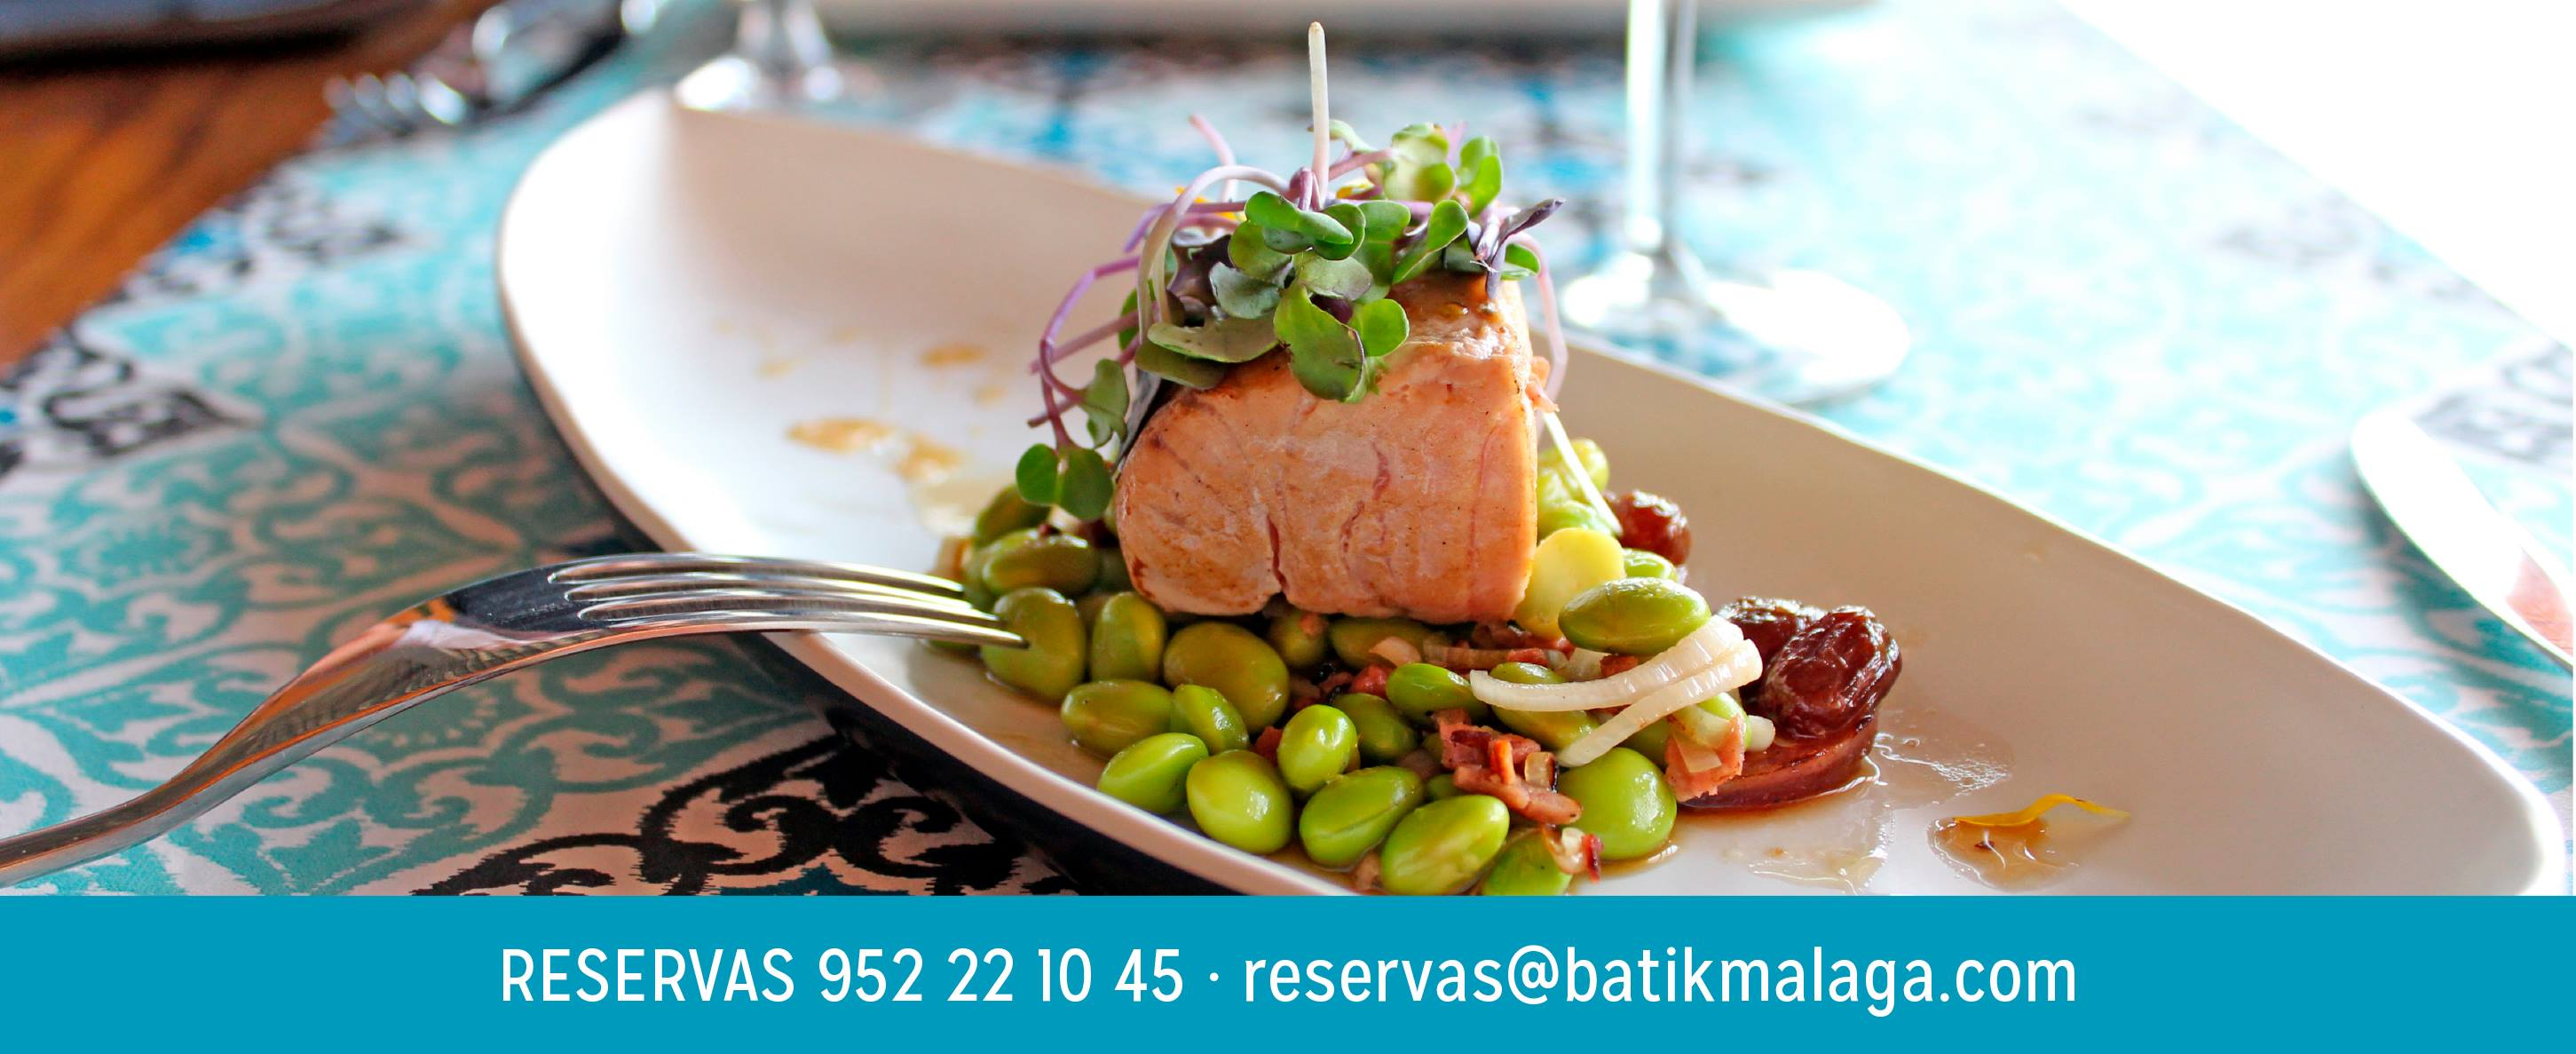 Visit Batik, the best restaurant in Malaga